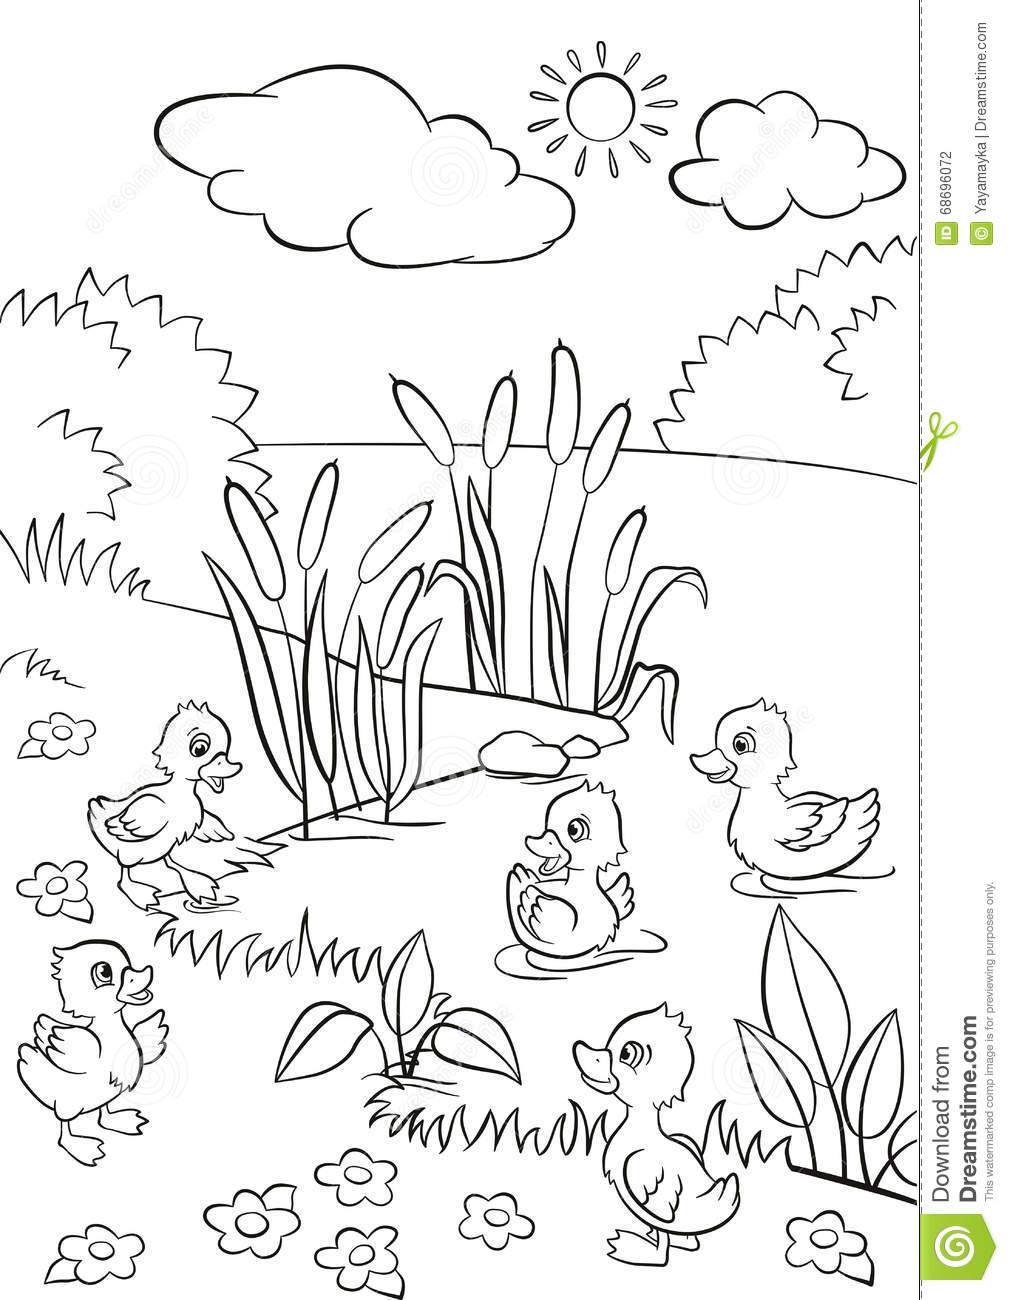 Coloring pages grass - Around Bushes Coloring Cute Ducklings Five Flowers Grass Lake Little Pages